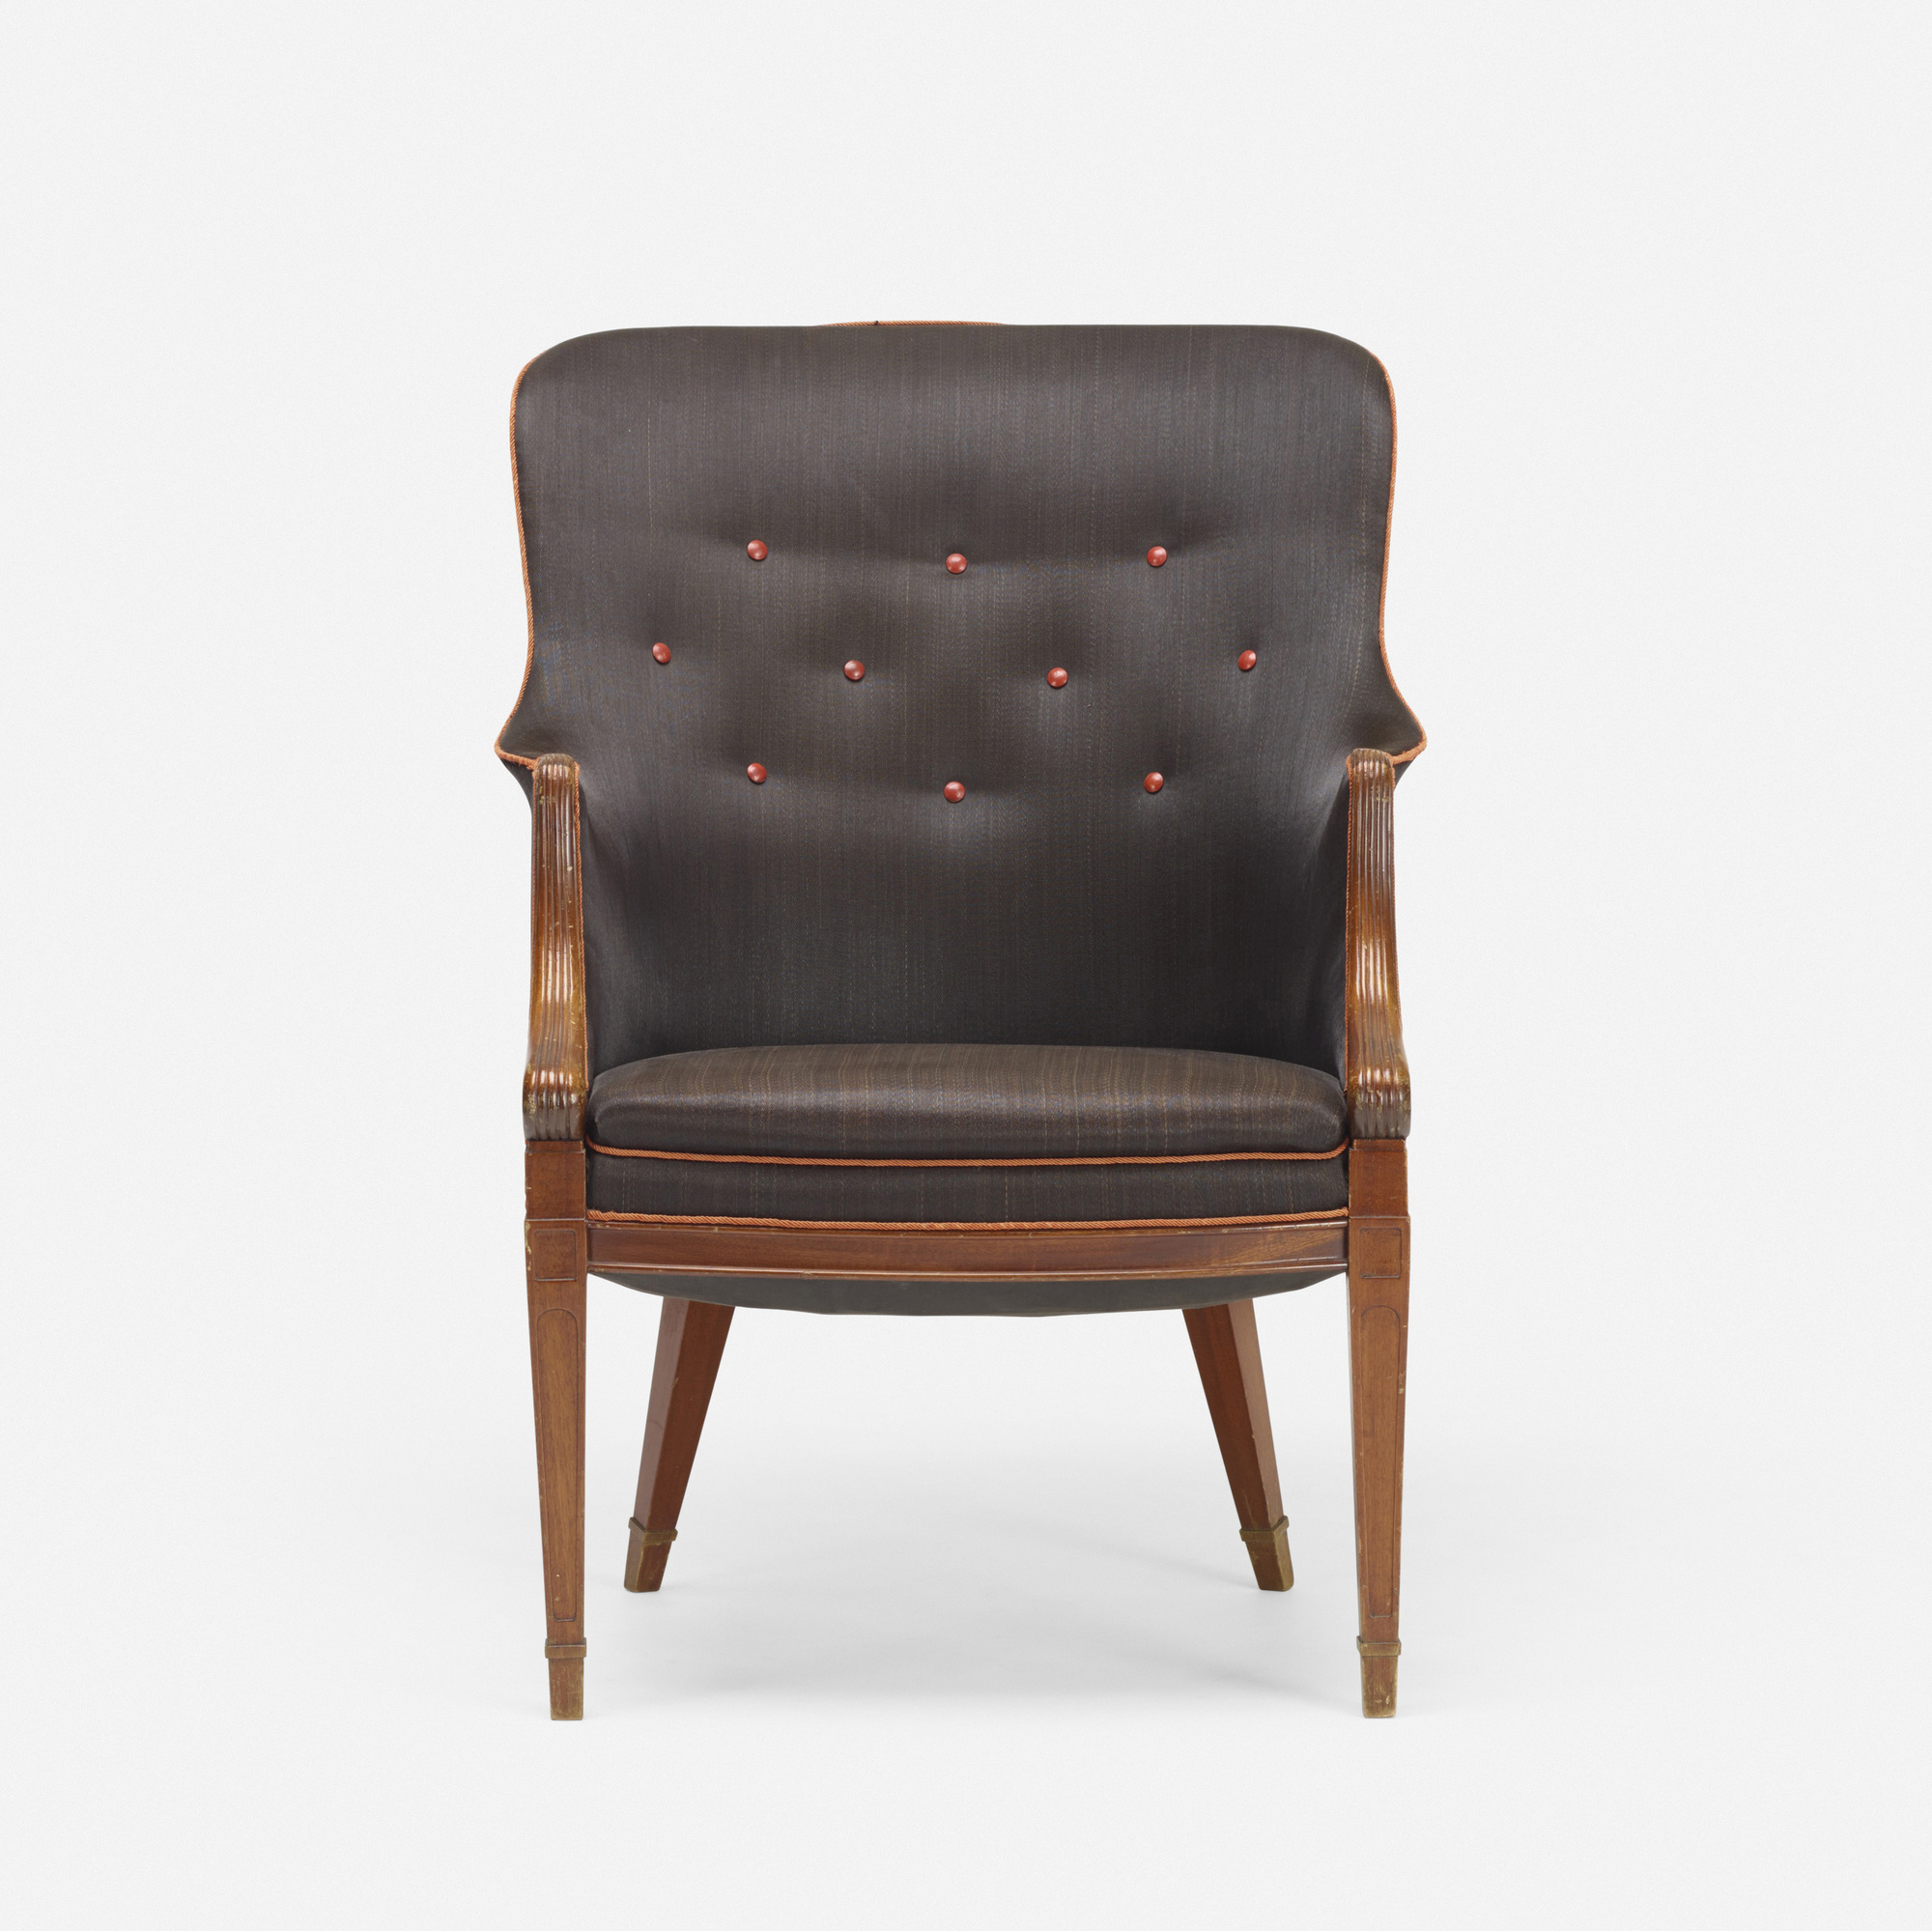 120: Frits Henningsen / lounge chair (2 of 4)